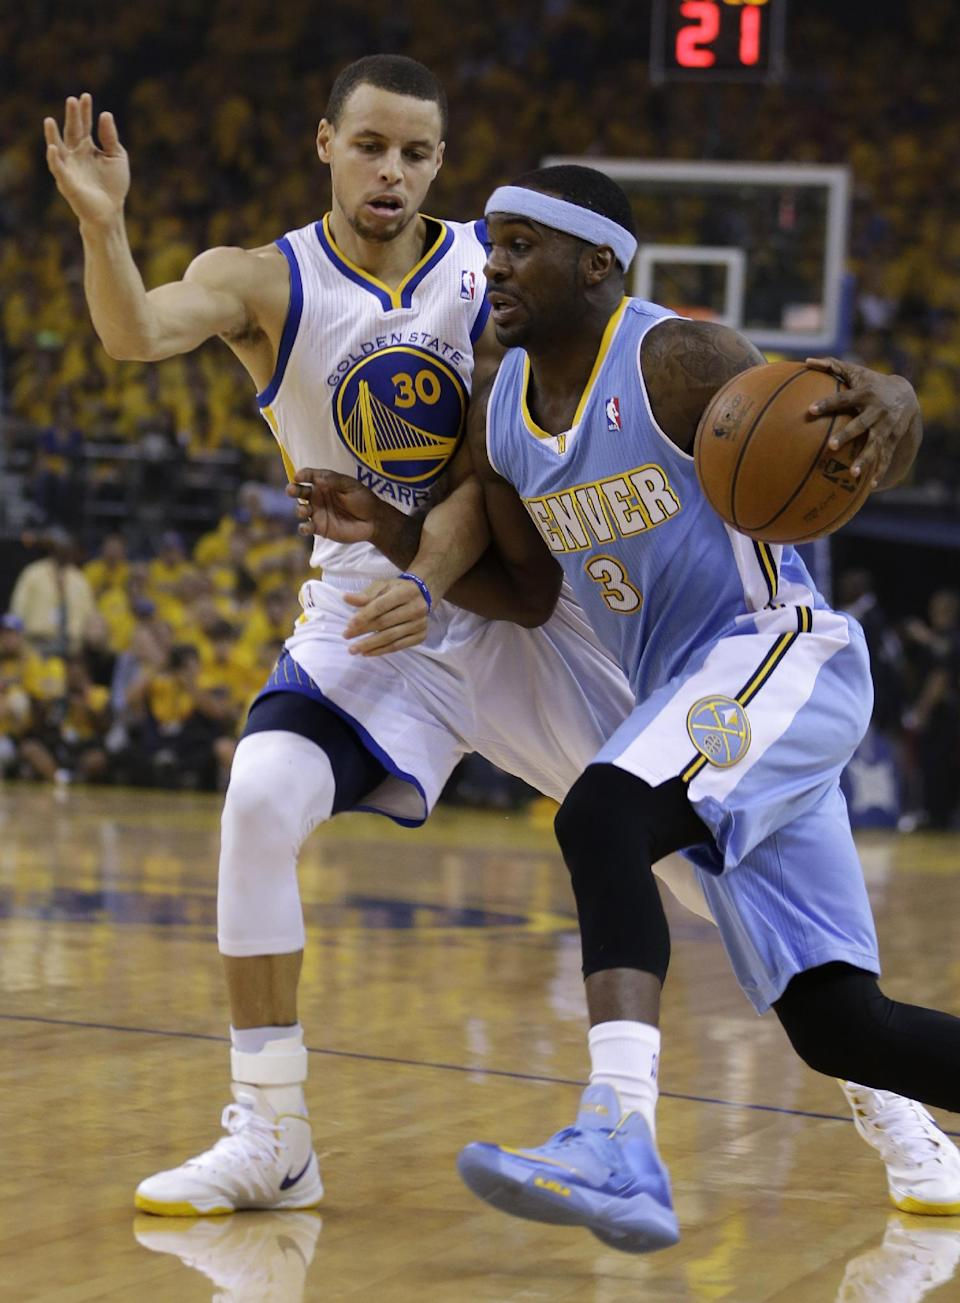 Denver Nuggets' Ty Lawson, right, drives the ball past Golden State Warriors' Stephen Curry (30) during the first half of Game 4 in a first-round NBA basketball playoff series on Sunday, April 28, 2013, in Oakland, Calif. (AP Photo/Ben Margot)